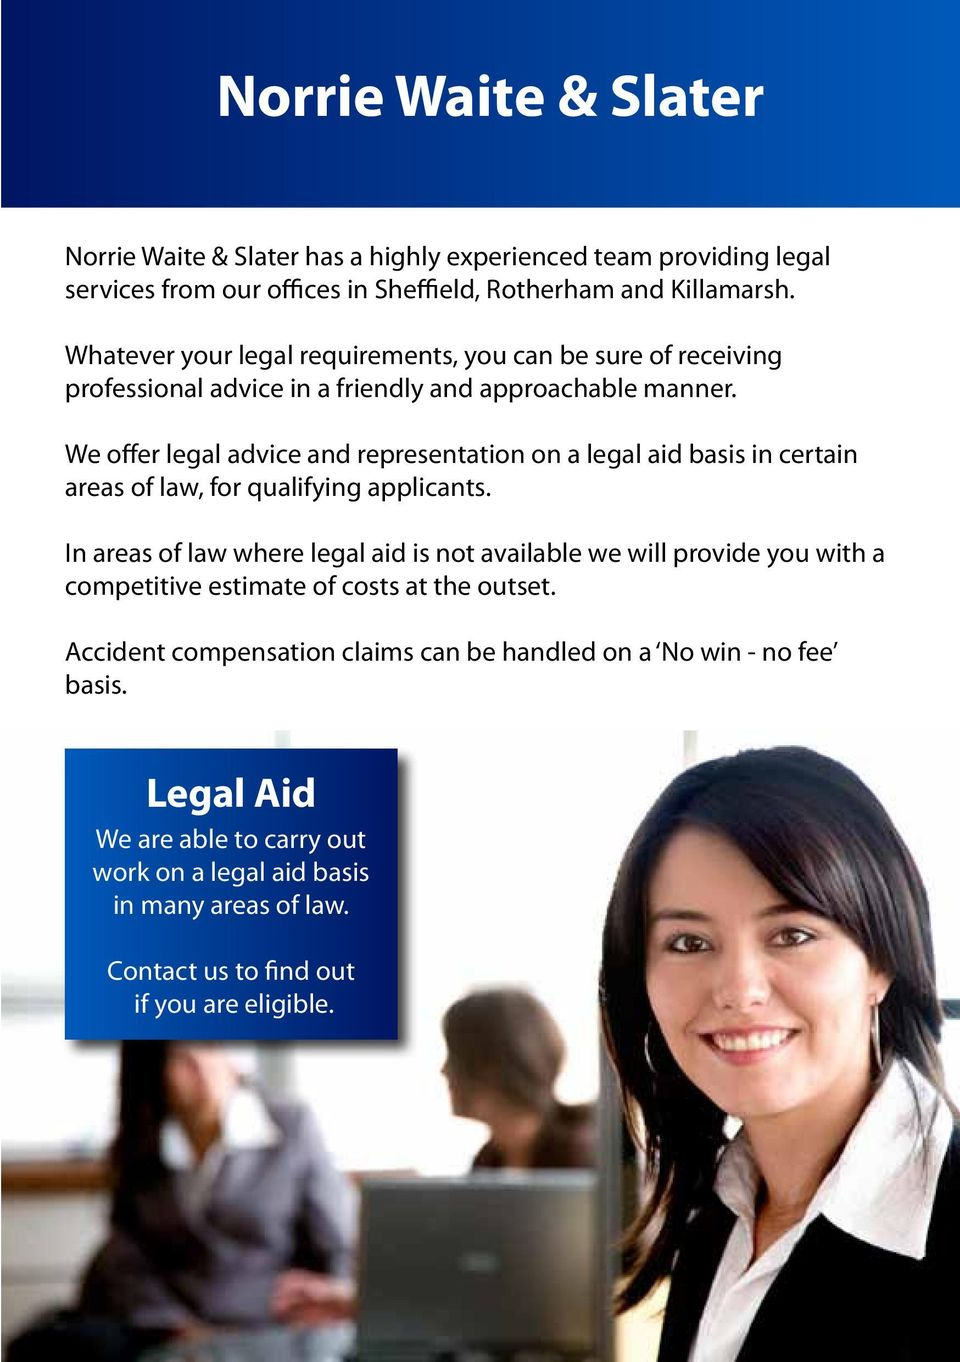 We offer legal advice and representation on a legal aid basis in certain areas of law, for qualifying applicants.